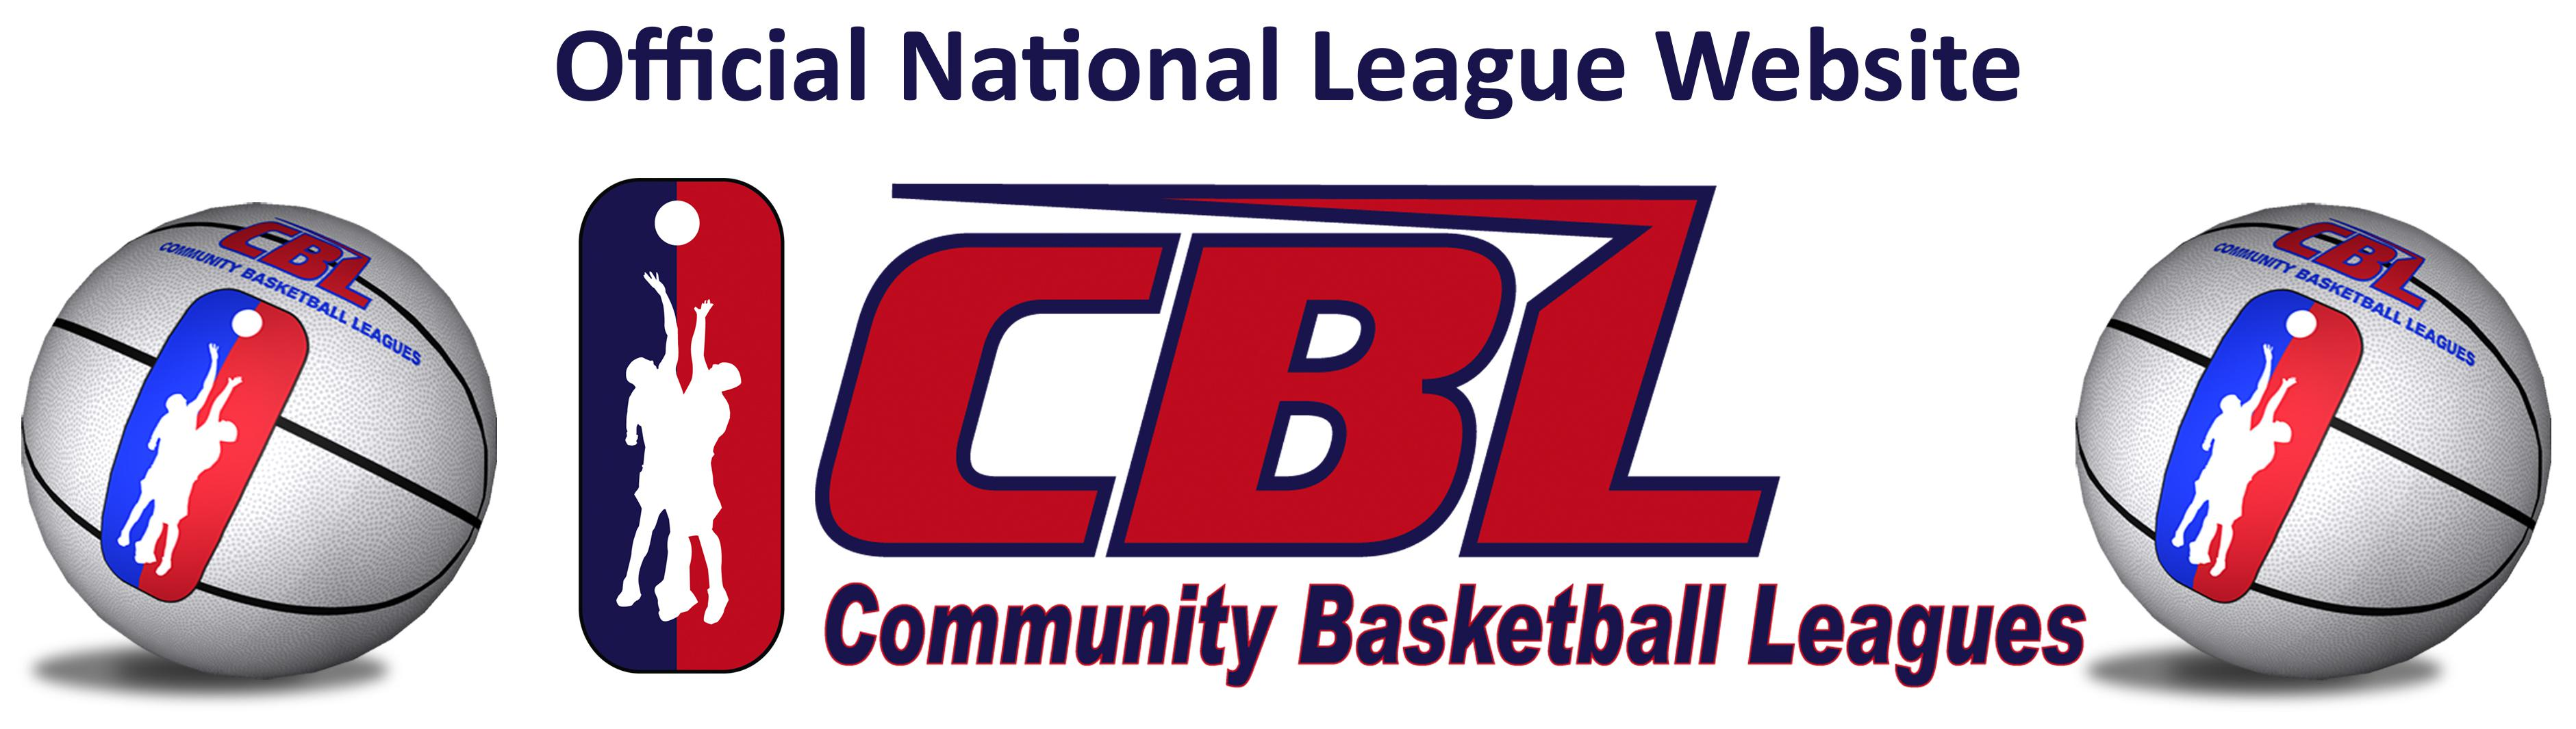 Cbl website header 300 dpi